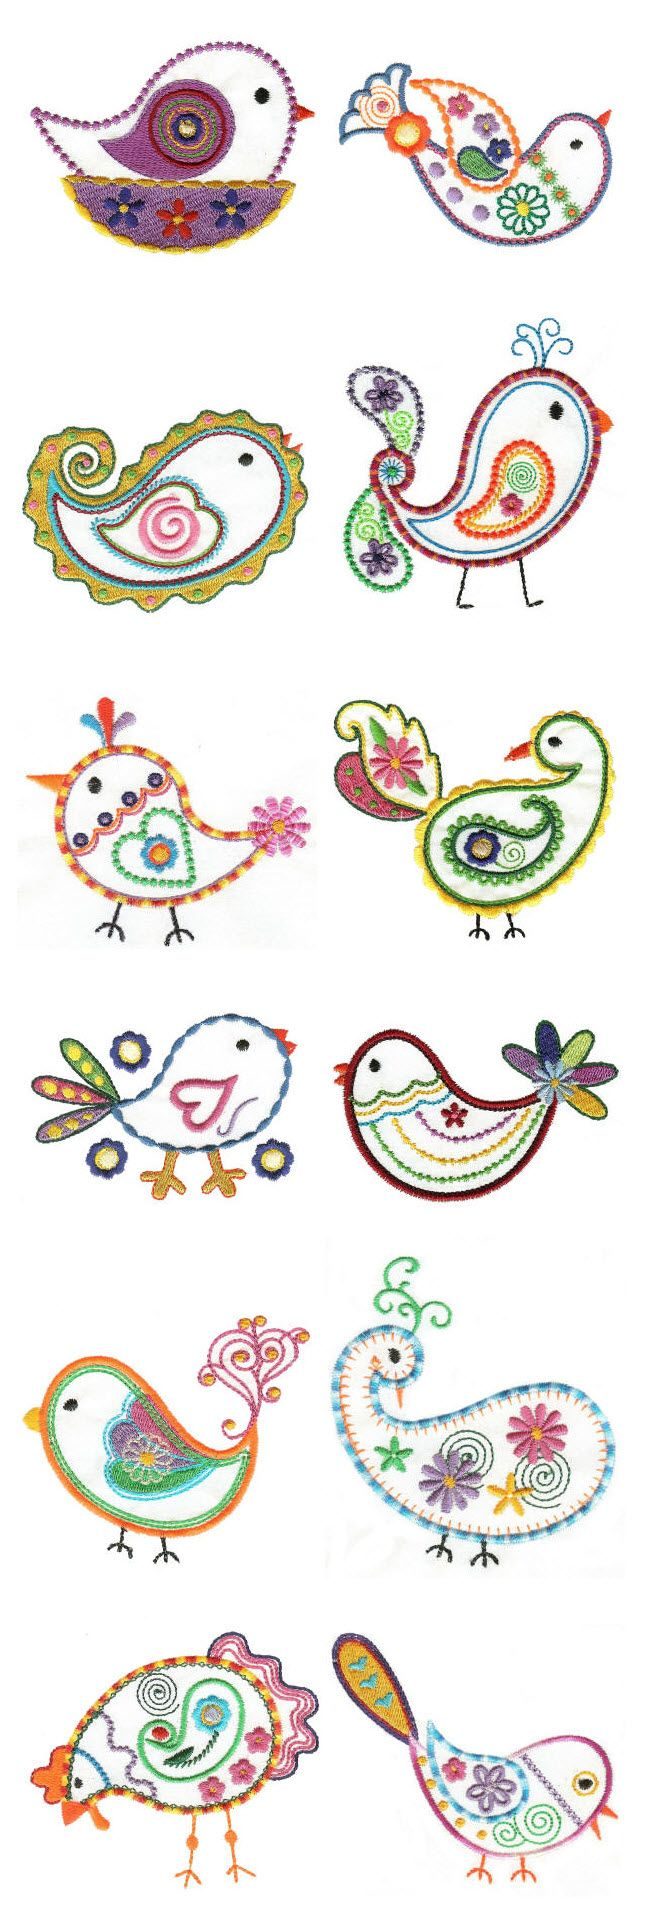 Embroidered birdies.: Tattoo Ideas, Embroidery Patterns, Cute Birds, Little Birds, Embroidery Design, Paisley Birds, Machine Embroidery, Cute Tattoo, Birds Embroidery